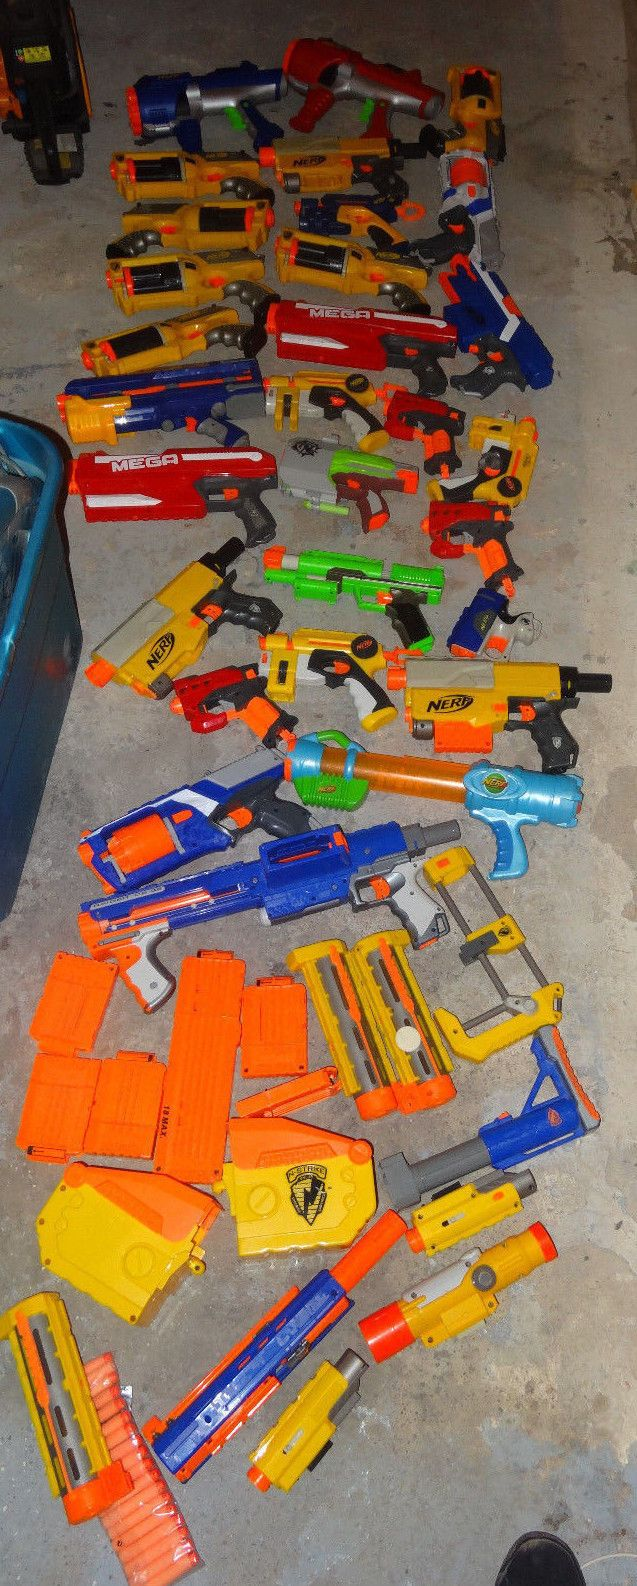 B5c Huge Nerf Gun Lot Guns Plus Accessories Darts Clips Guns Drums LOOK!